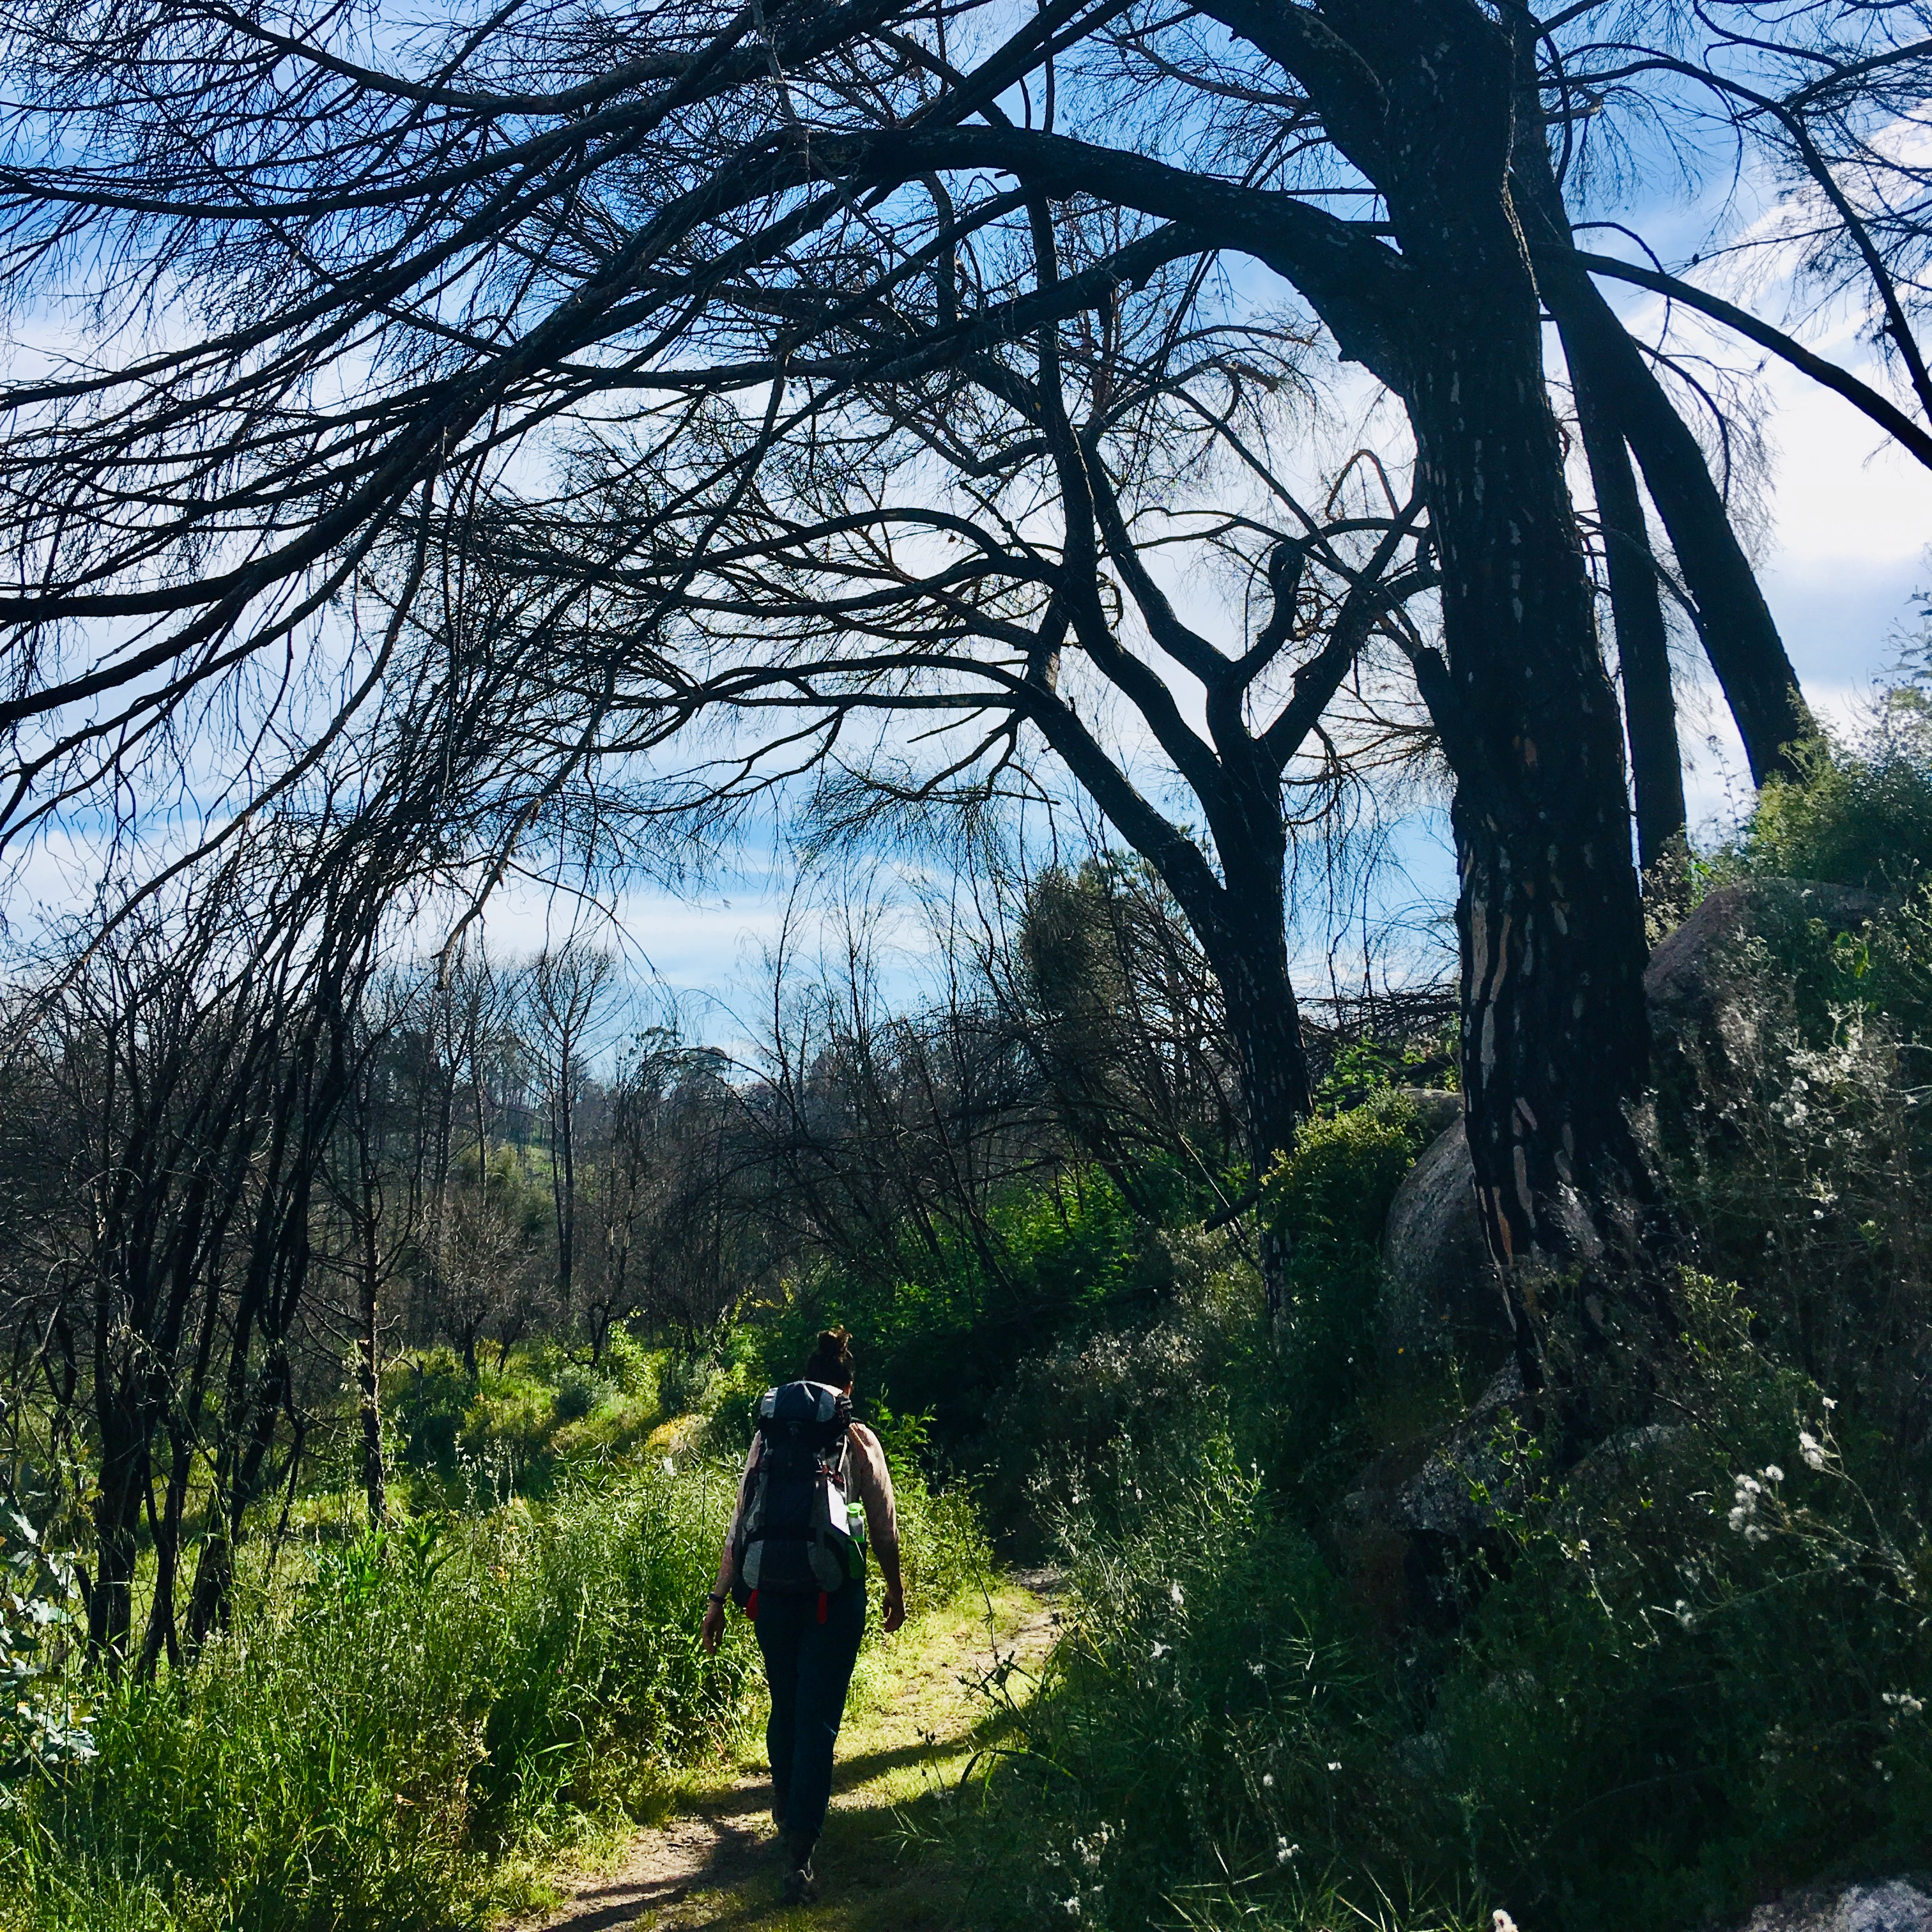 Walking under the remnants of Parasol Pine trees